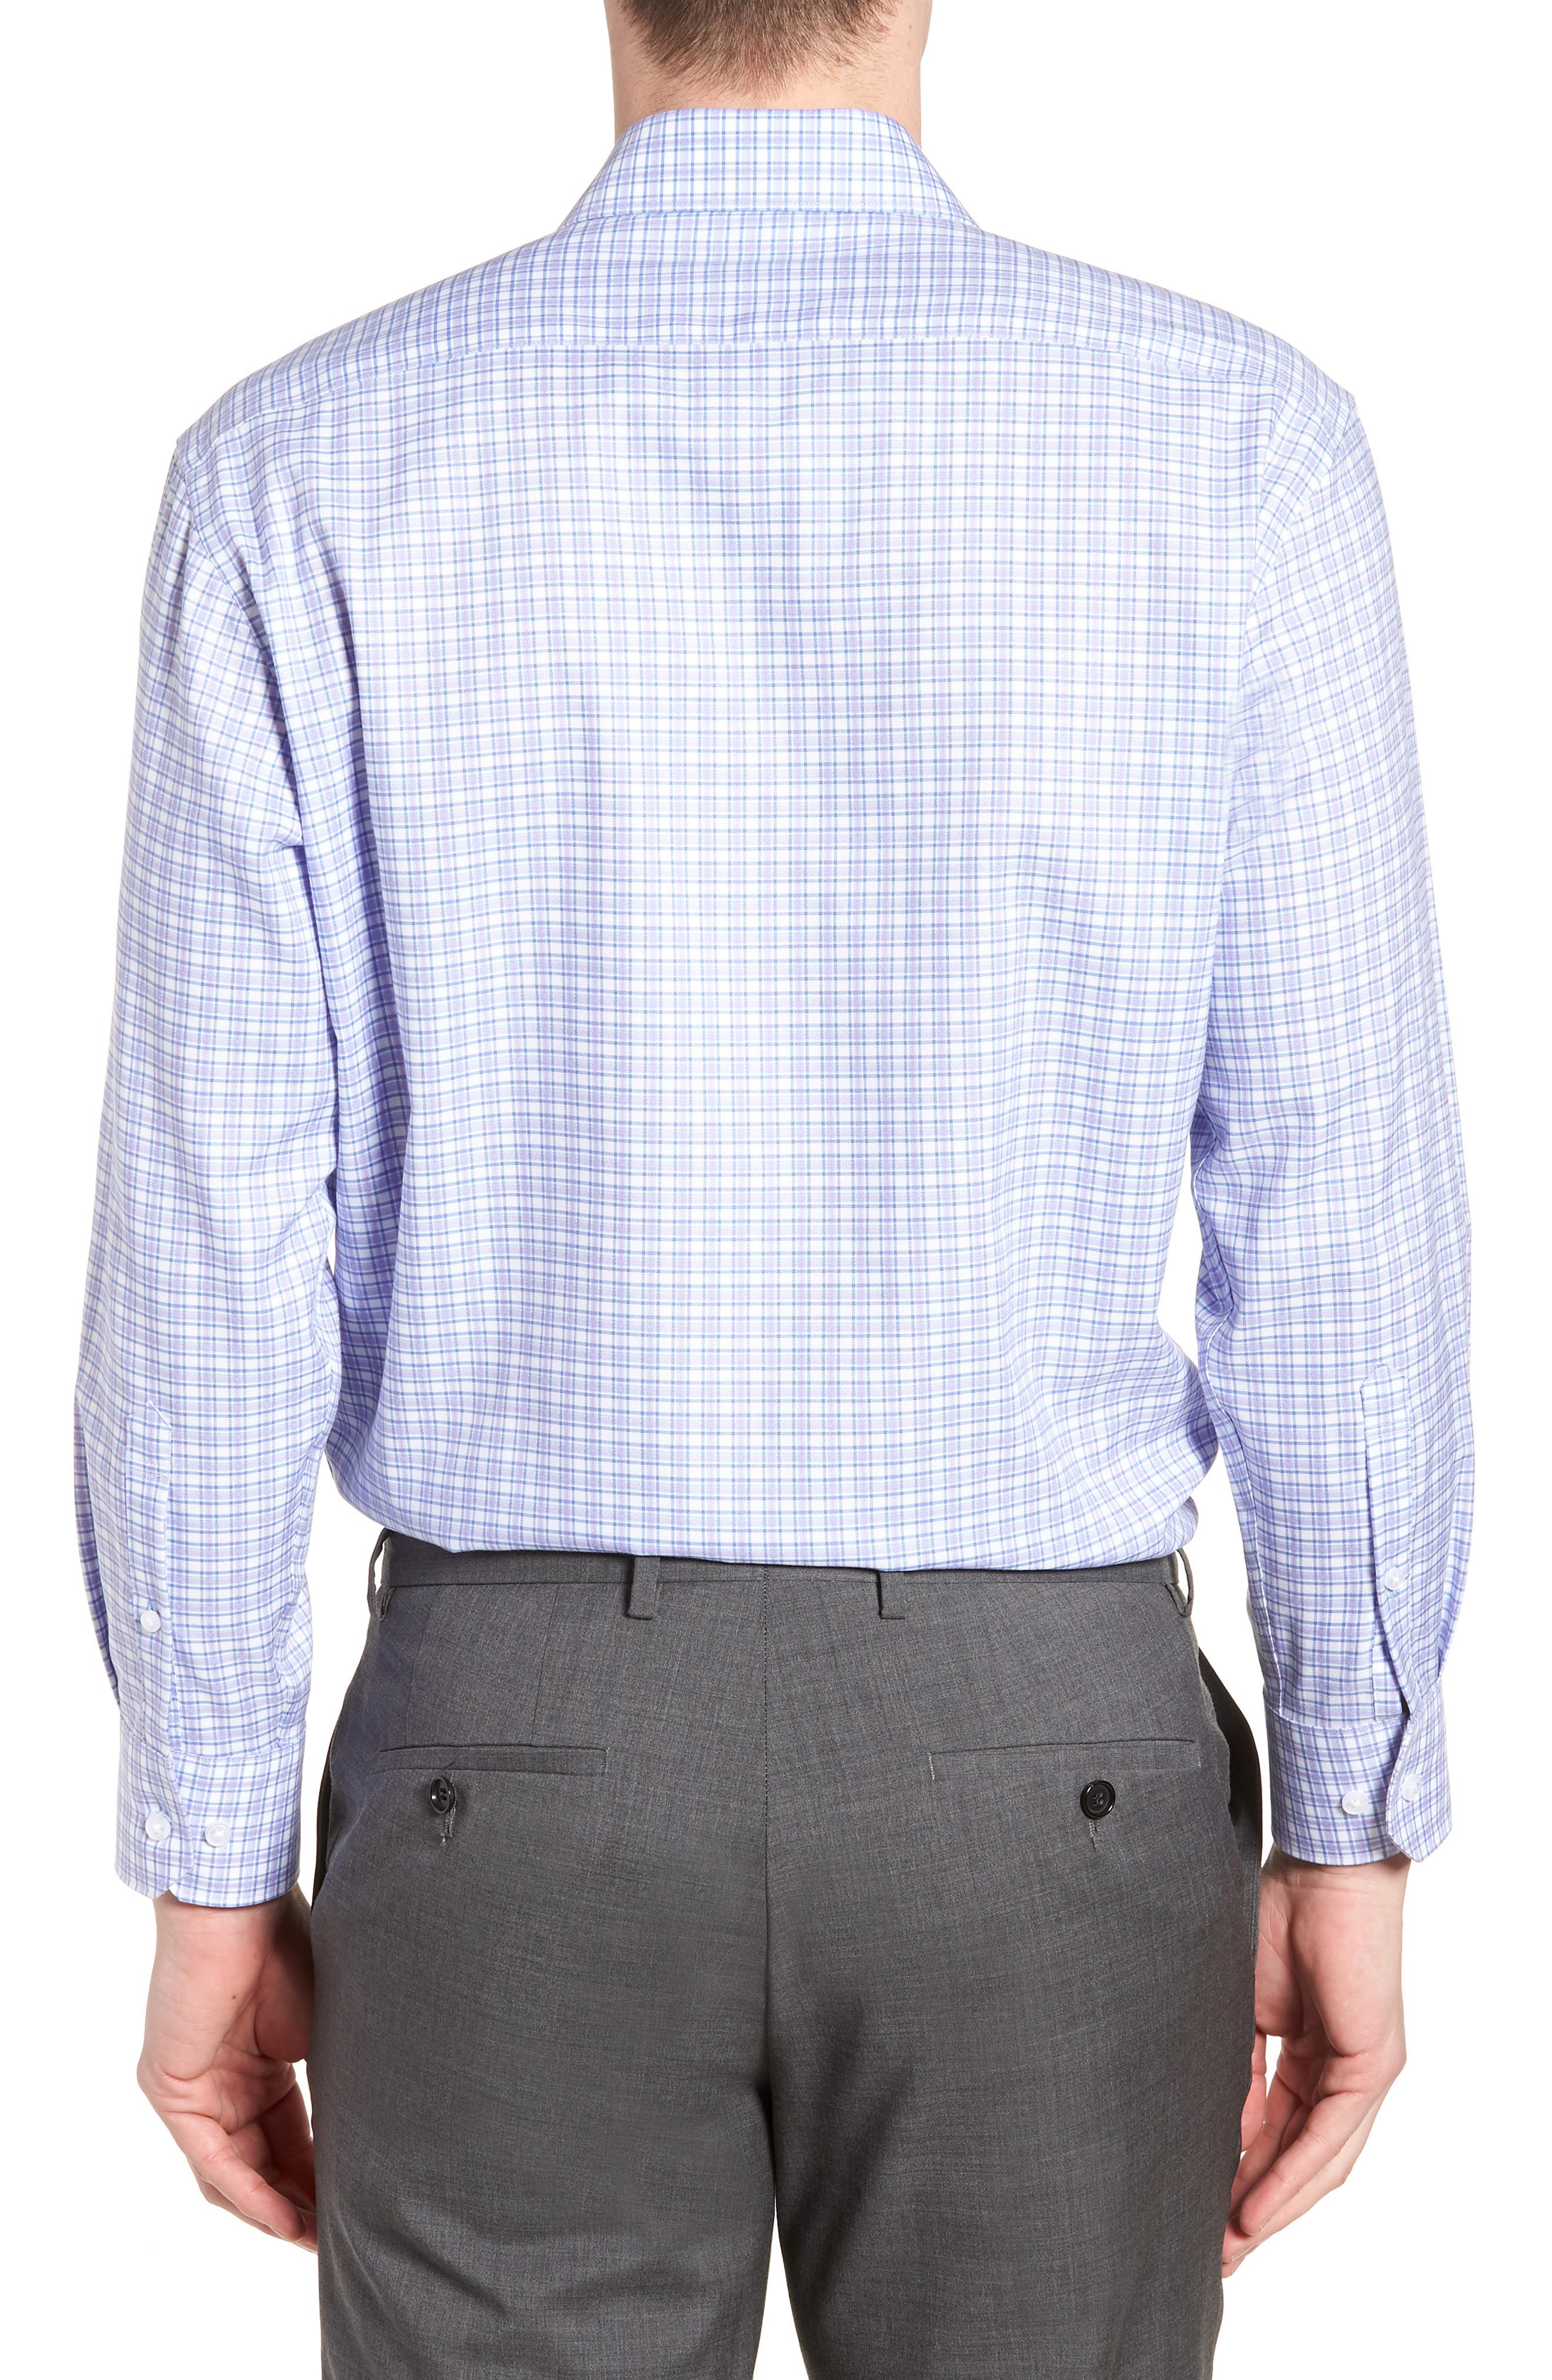 Neil Trim Fit Check Dress Shirt,                             Alternate thumbnail 3, color,                             530